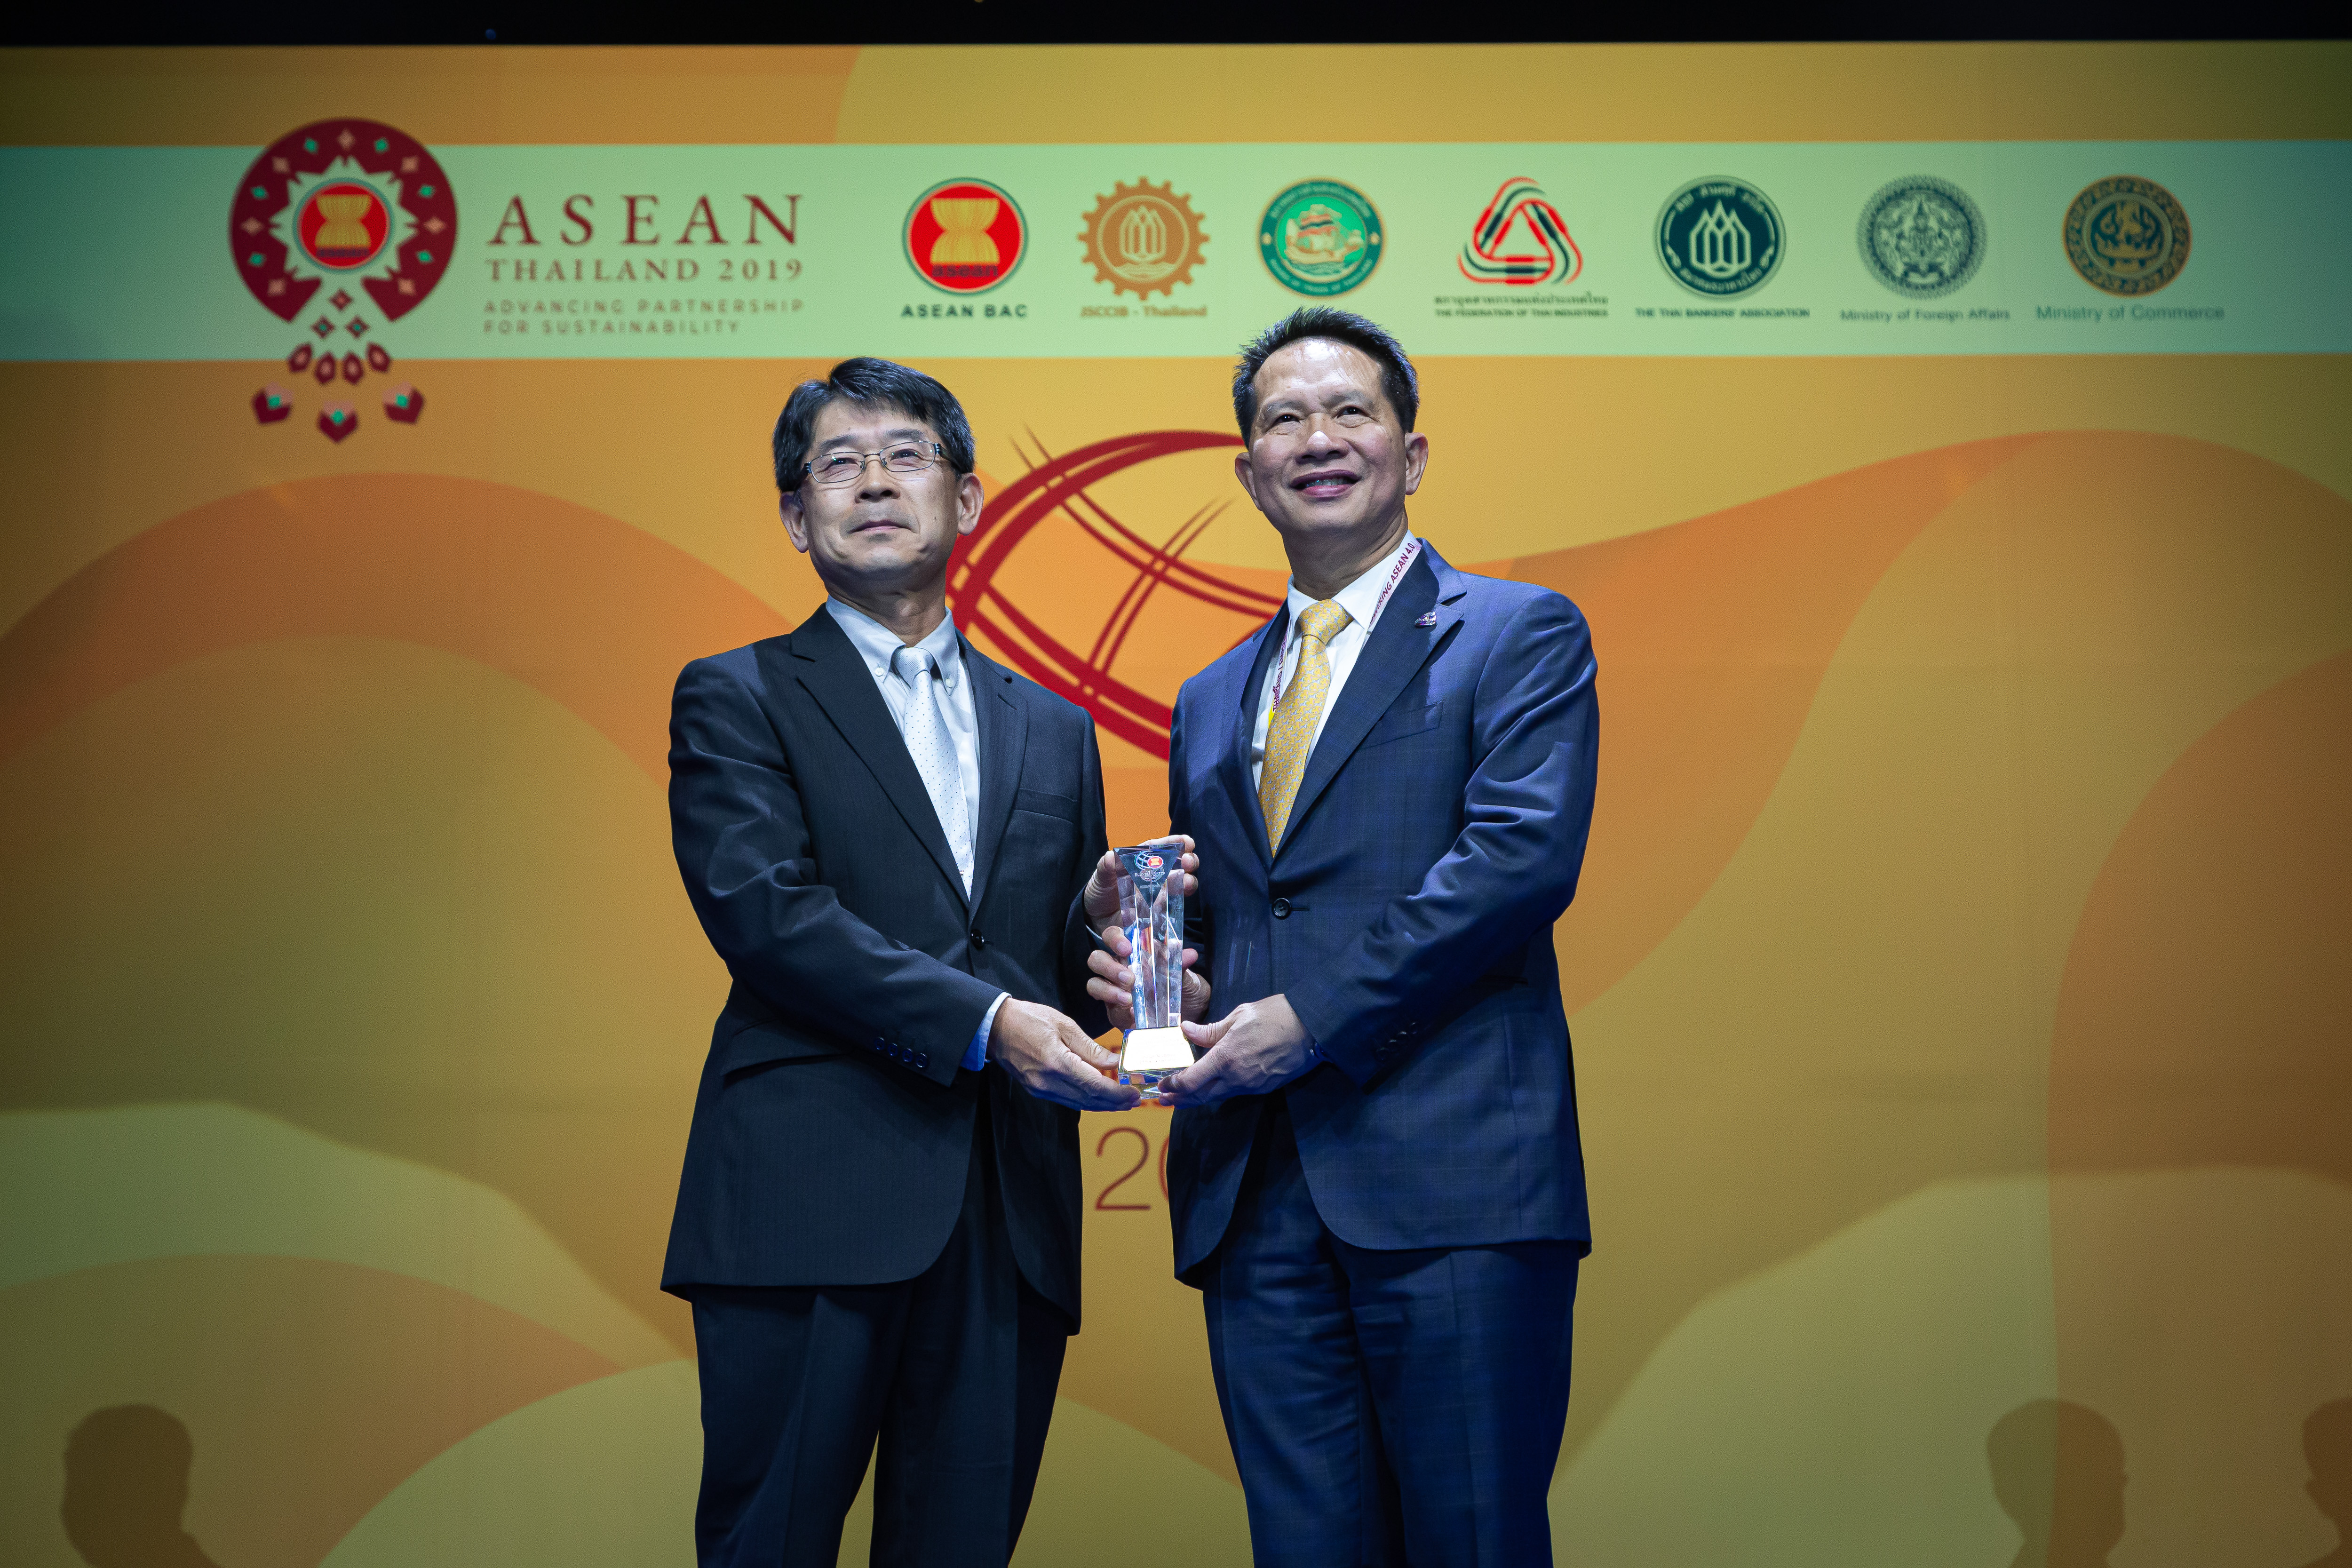 IRC received ASEAN BUSINESS AWARDS 2019